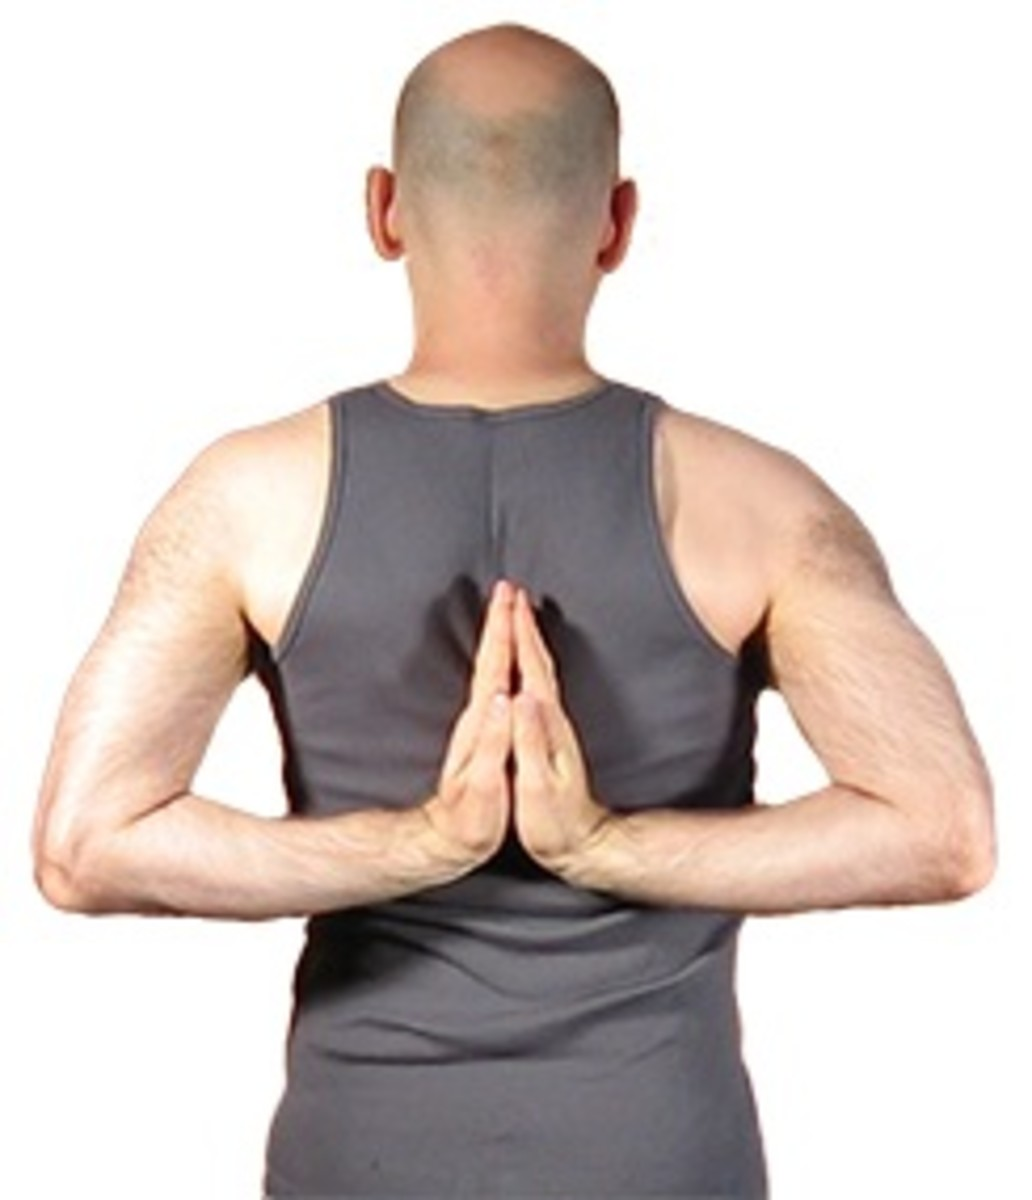 Prognosis: Learn to do this, and you'll have good posture!